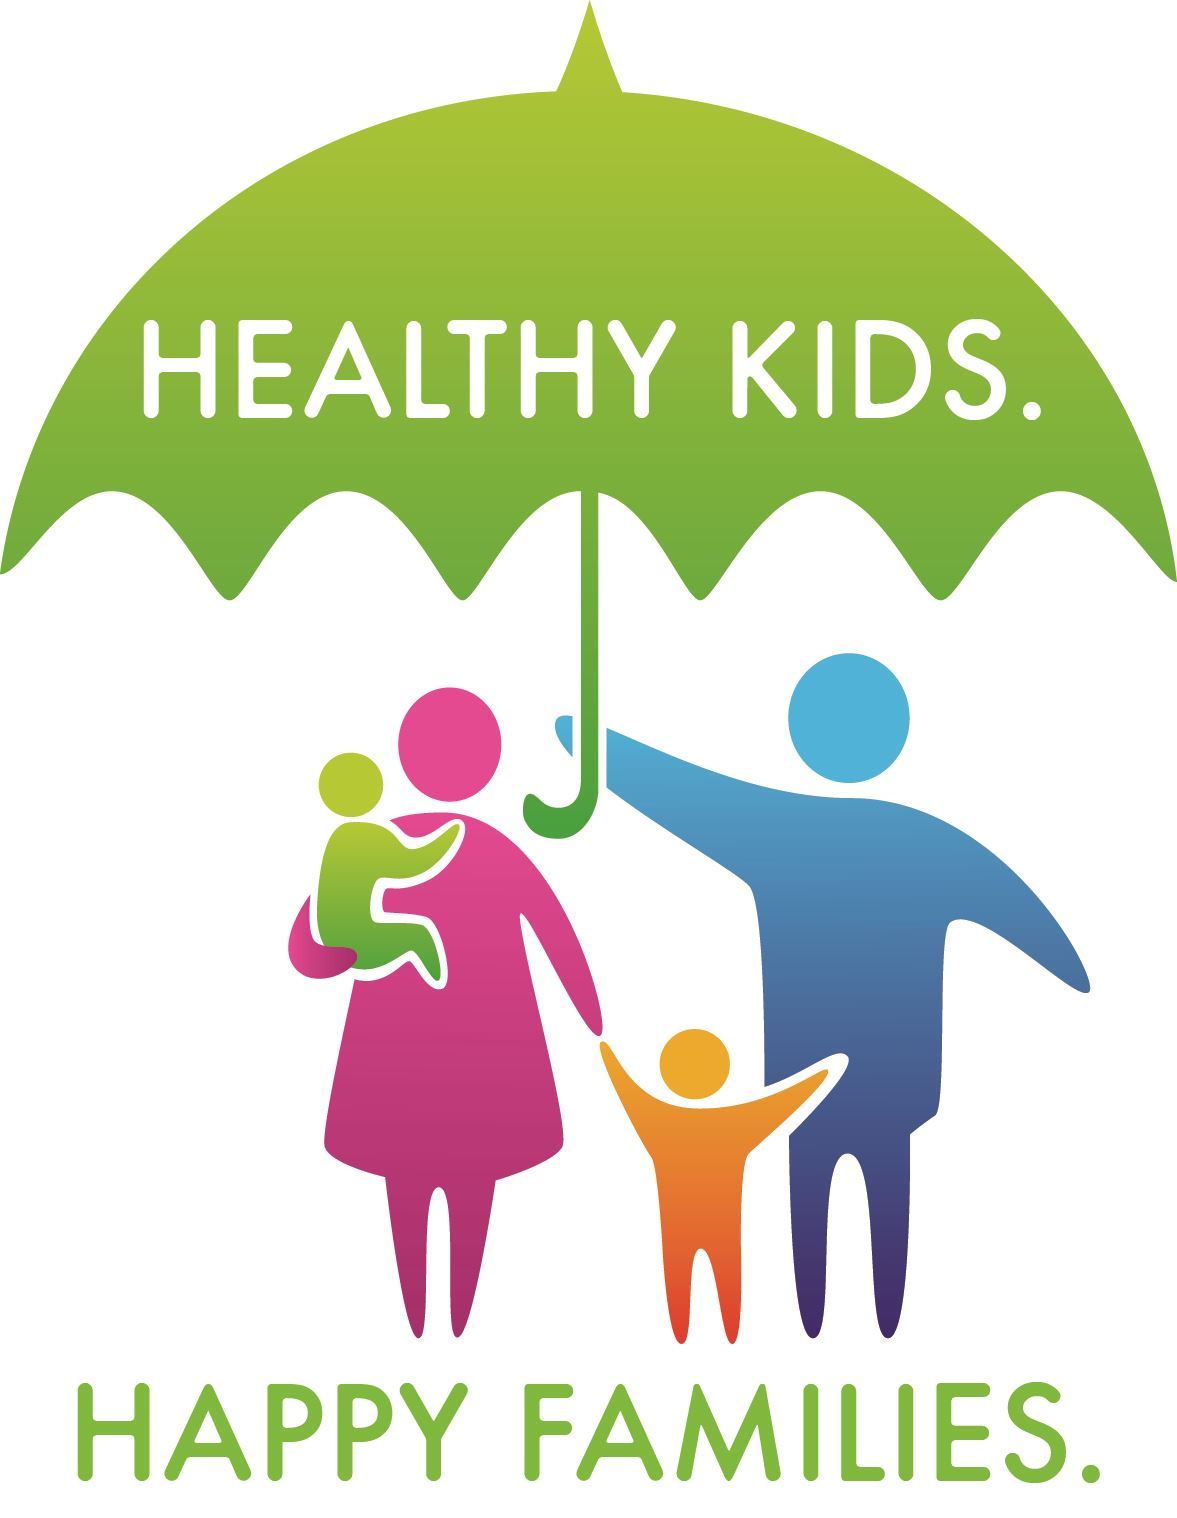 Healthy Kids Michigan website